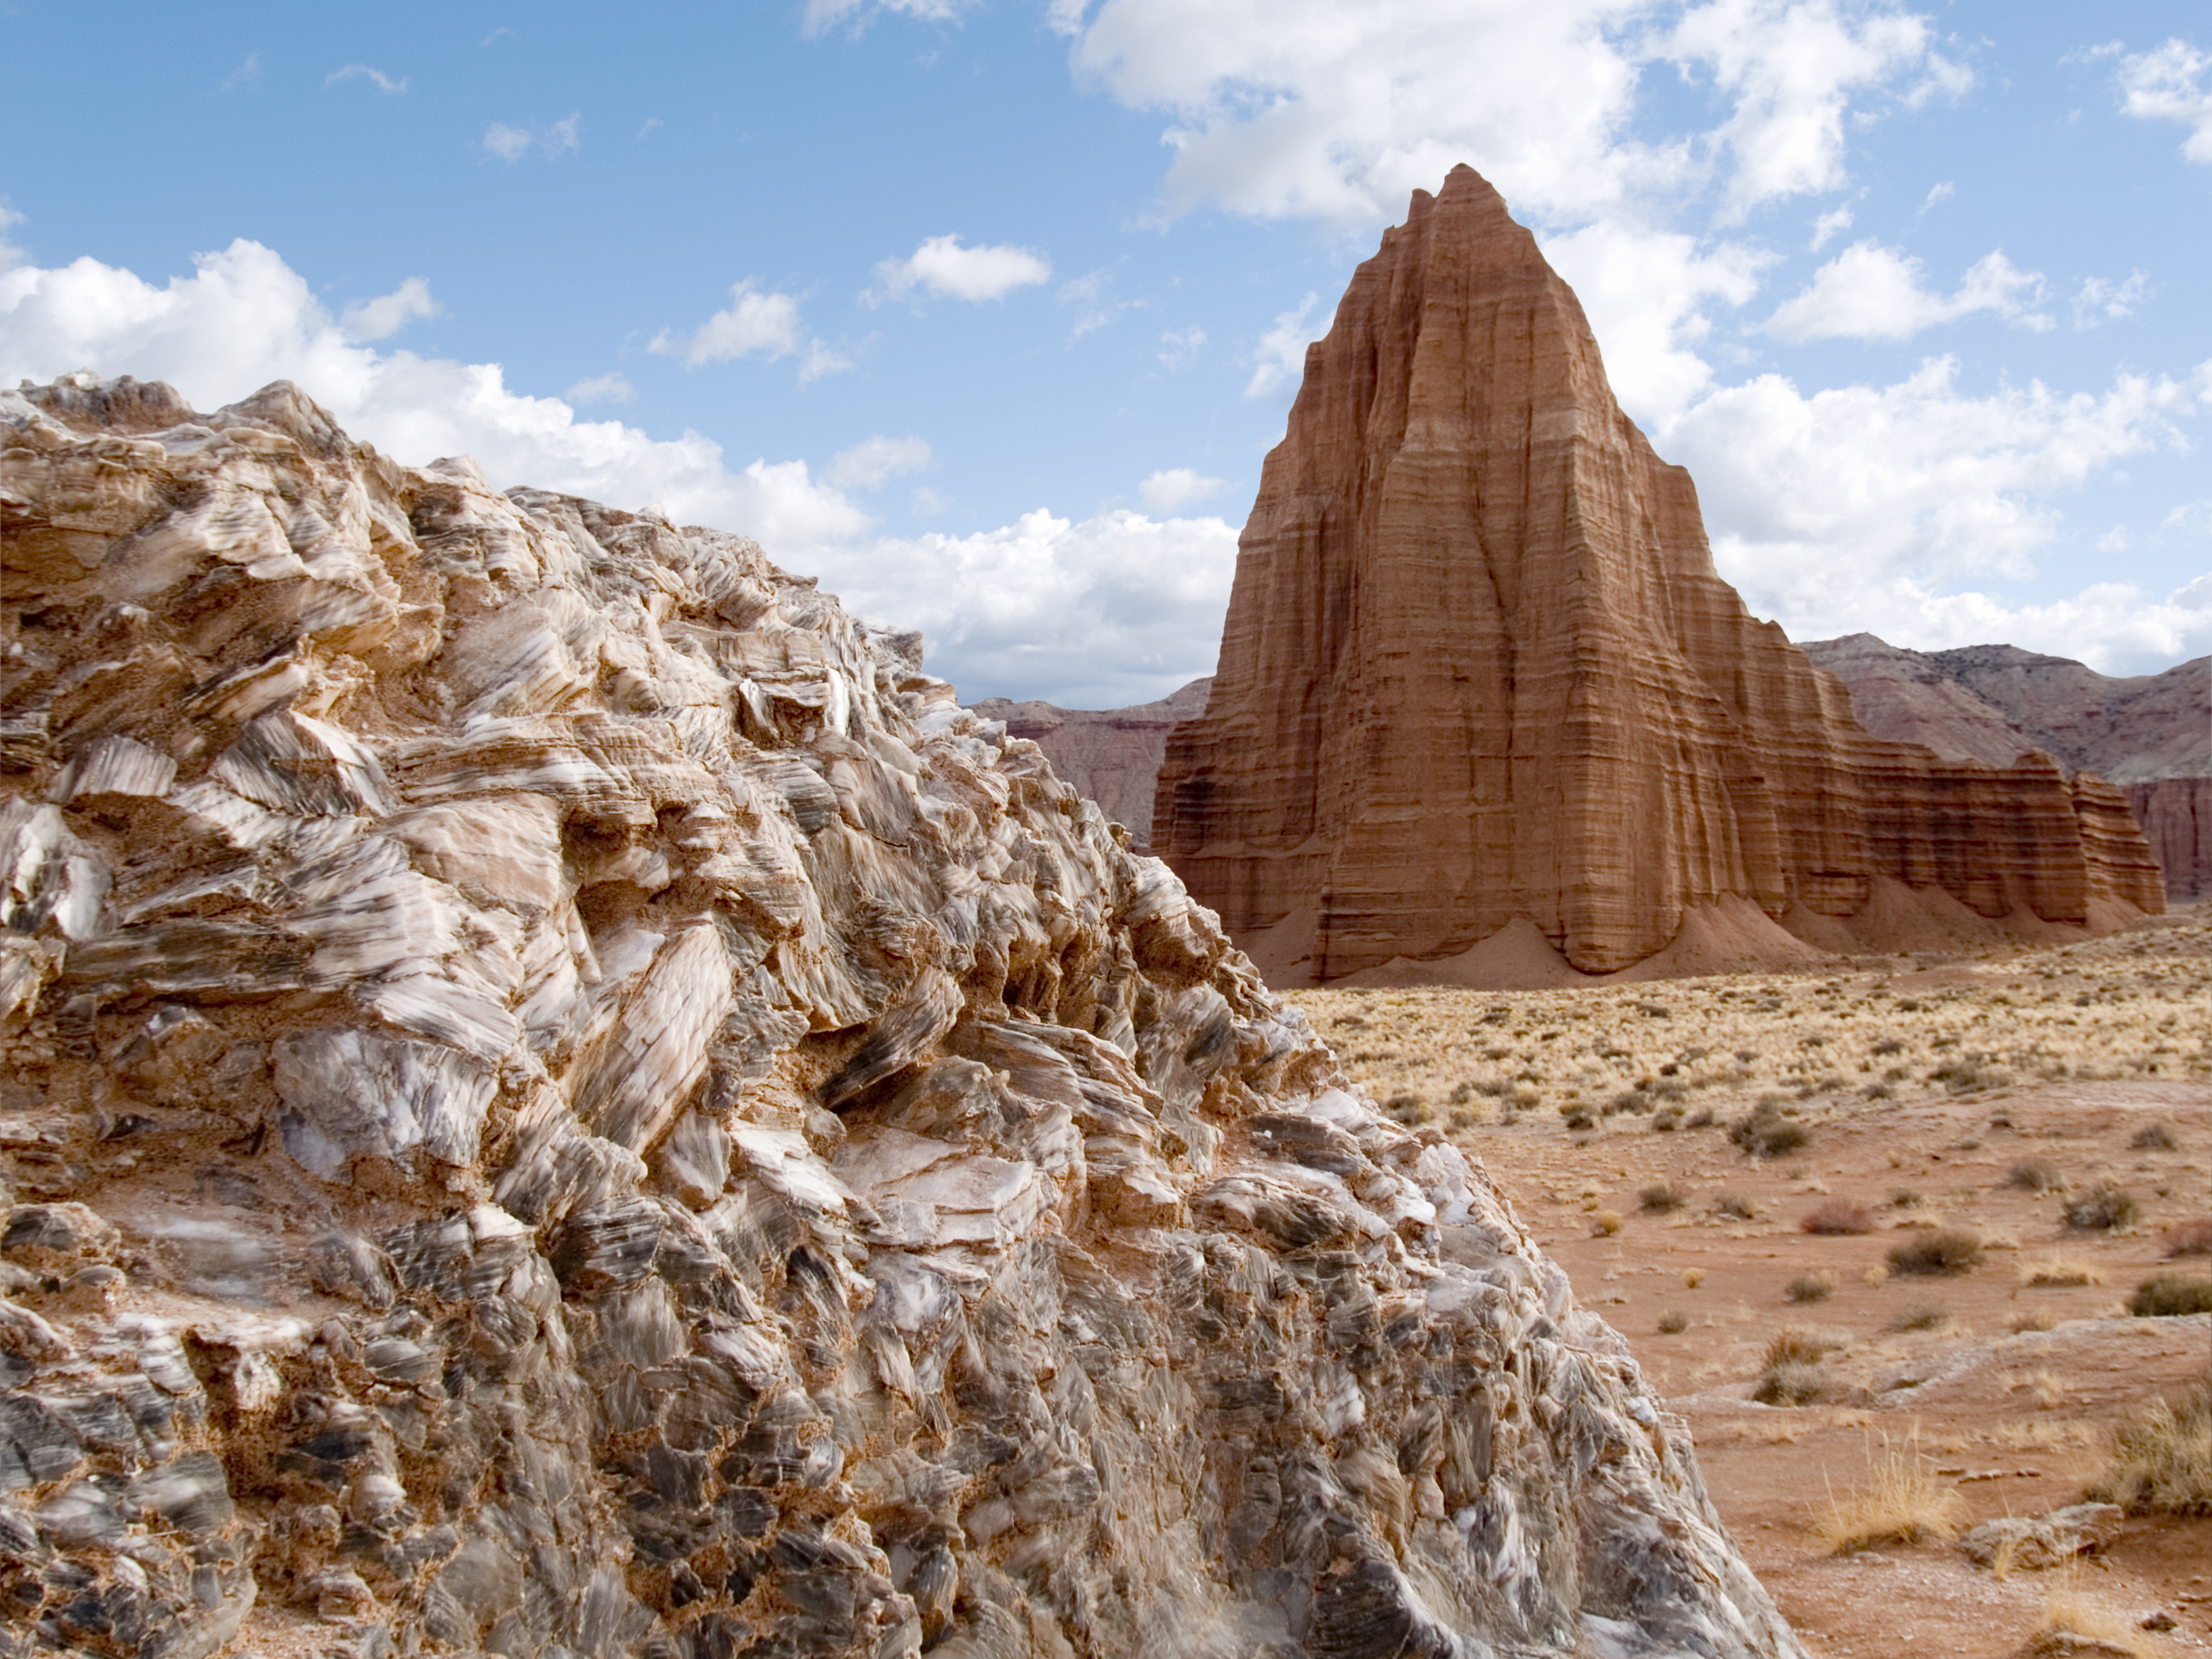 "Two of Capitol Reef National Park's popular attractions: Glass Mountain (foreground) and Temple of the Sun (background). Glass Mountain is a large exposed mound of selenite gypsum that formed within the Jurassic-aged Entrada Sandstone. The ""gypsum plug"" became exposed as the relatively soft Entrada Sandstone eroded away. Temple of the Sun is a large monolith that was also created by erosion of the Entrada Sandstone. Temple of the Sun, Capitol Reef National Park, Wayne County, Utah Photographer: Michael Vanden Berg"